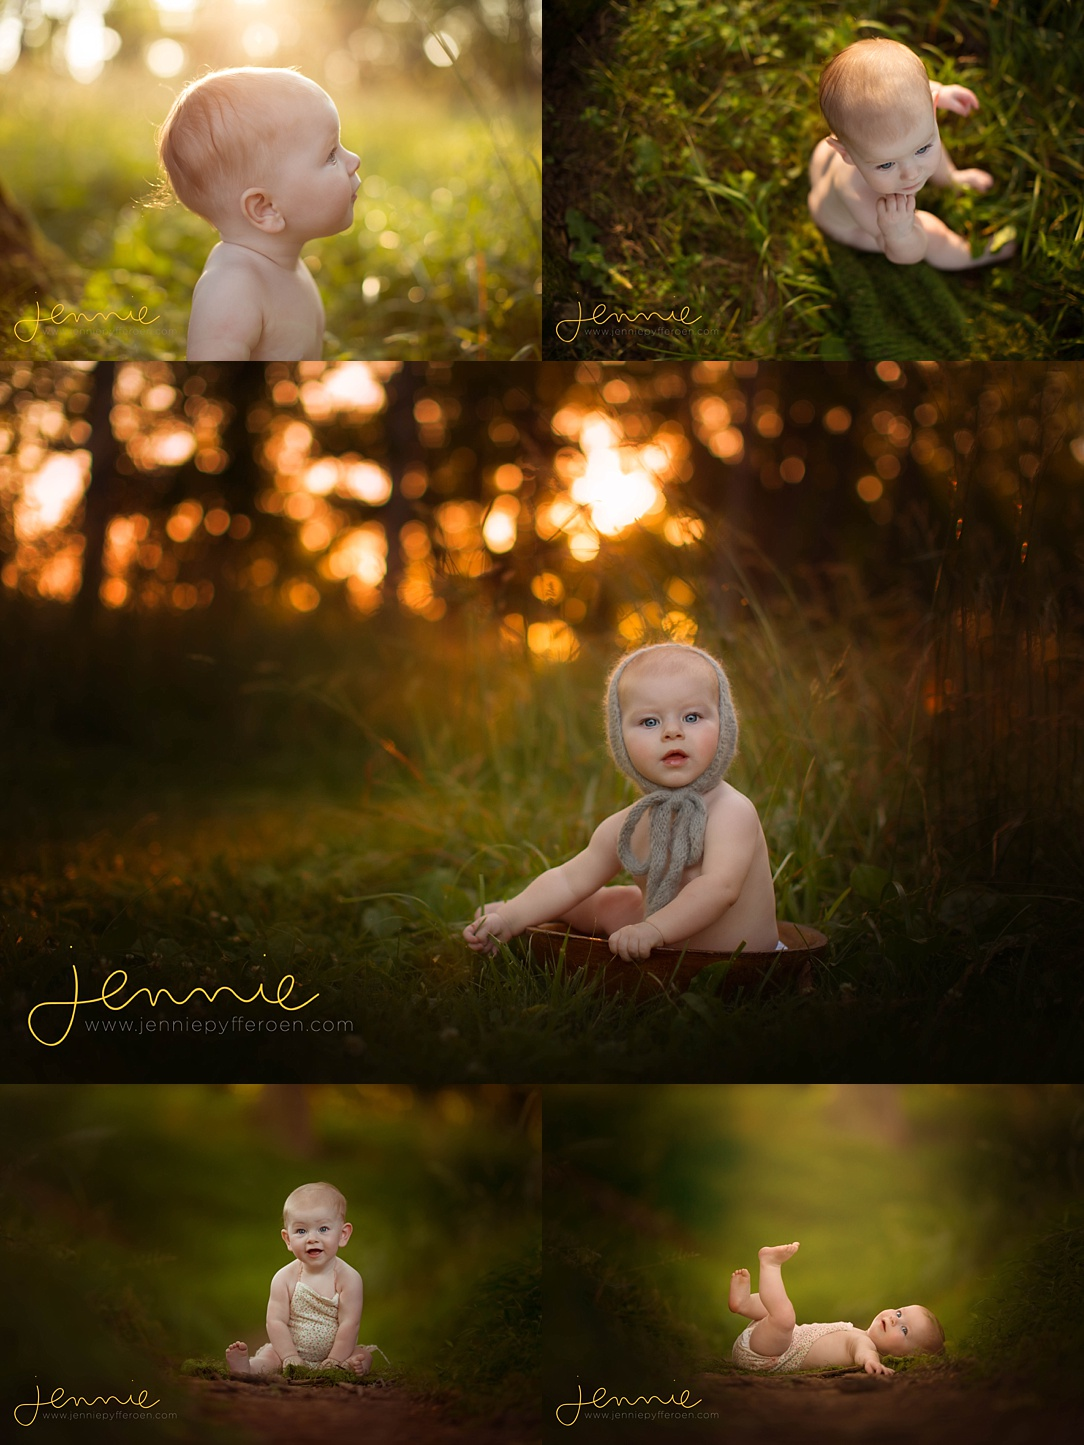 Nashville baby photographer and video film